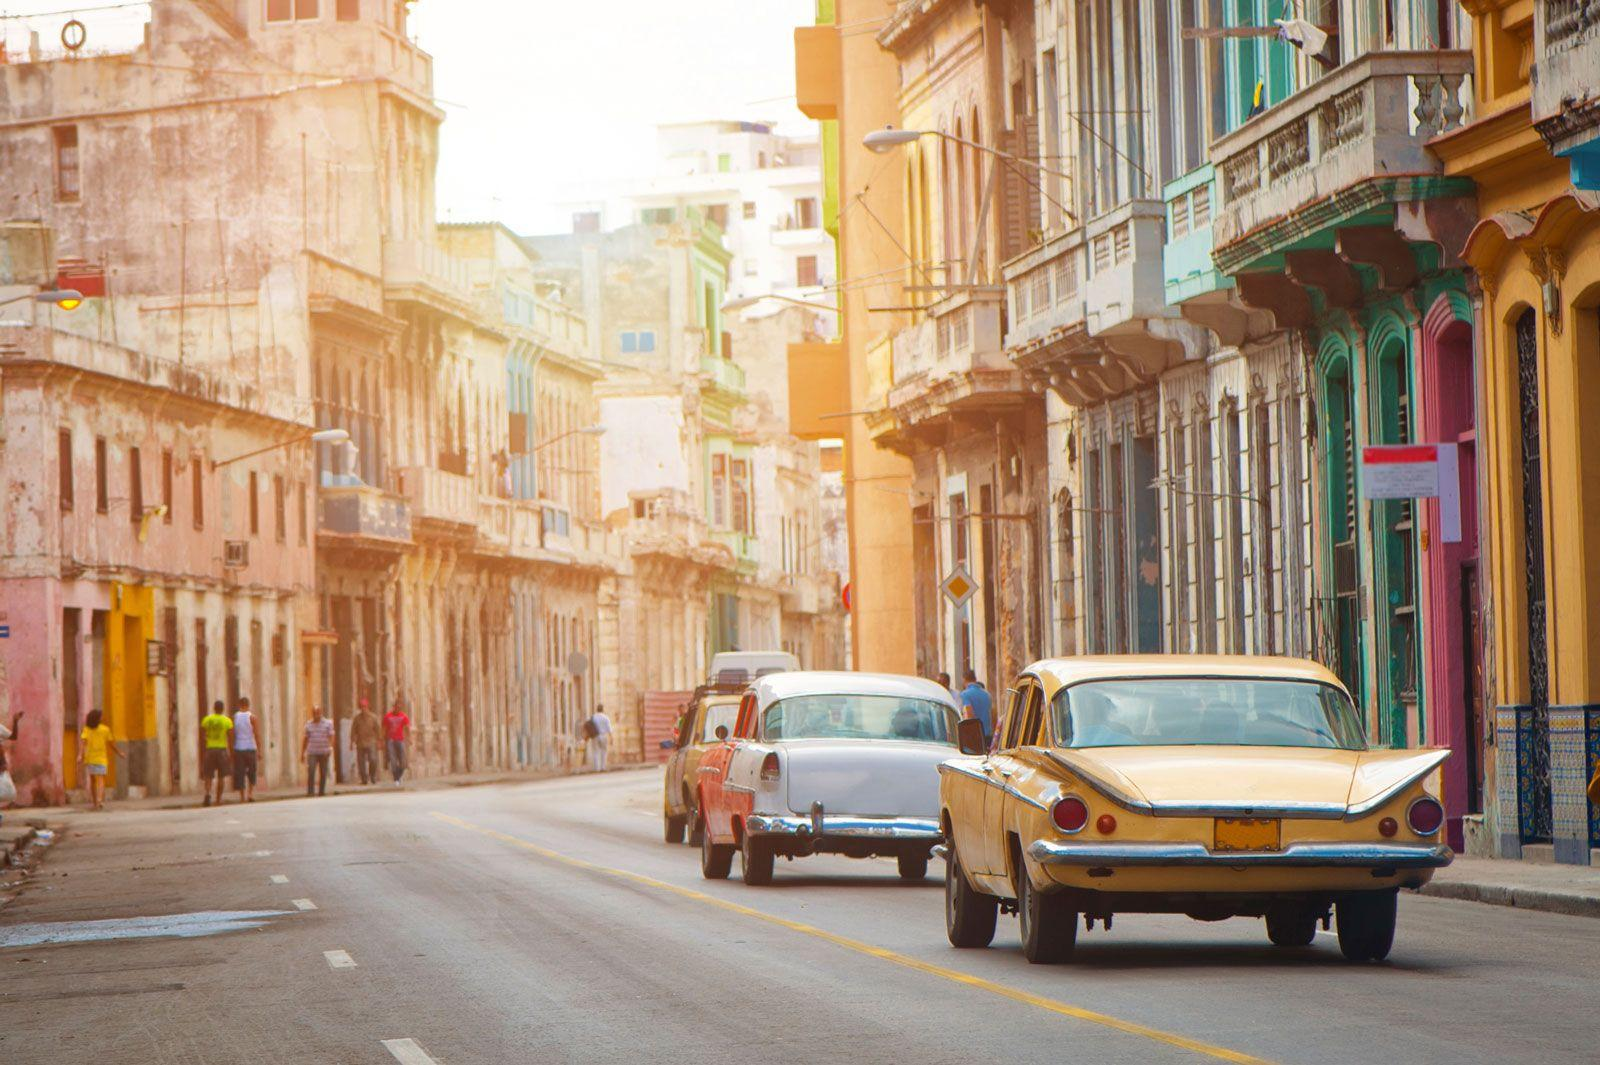 Download Free Modern Cuba The Wallpapers 2000x1000 | HD ...